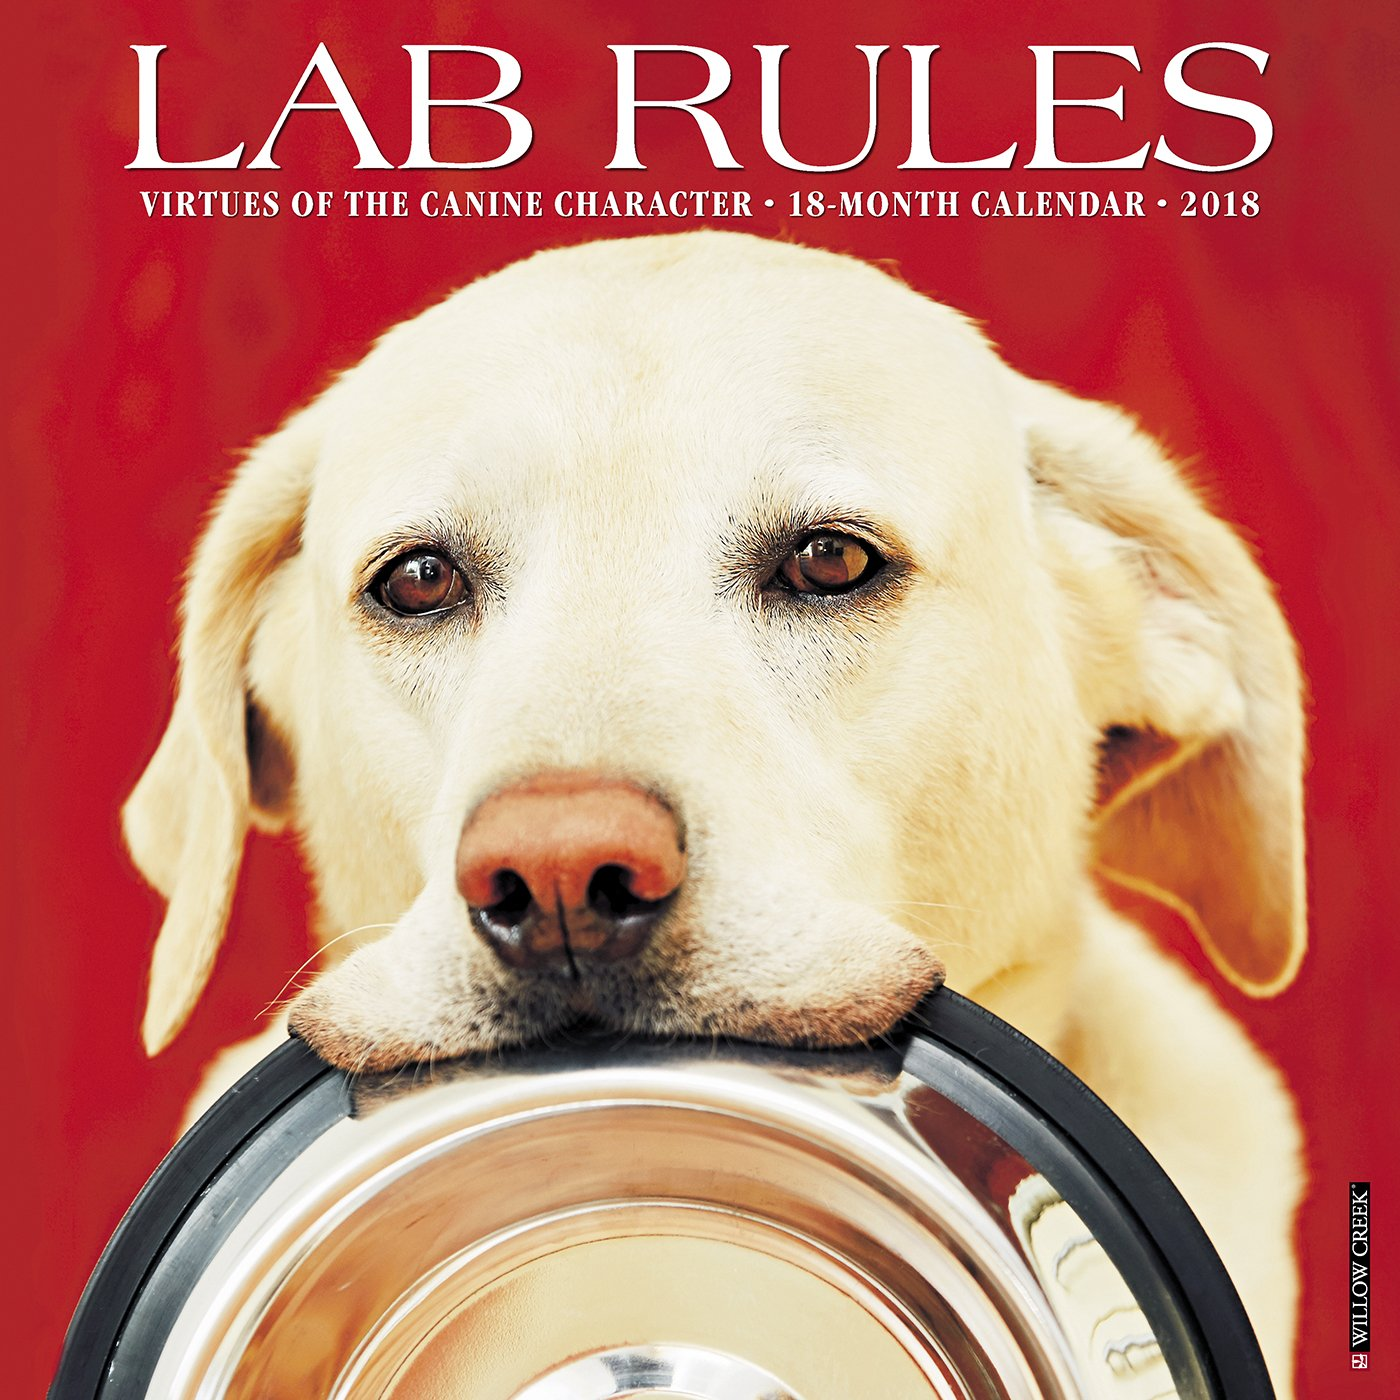 Lab Rules 2018 Calendar: Virtues of the Canine Character